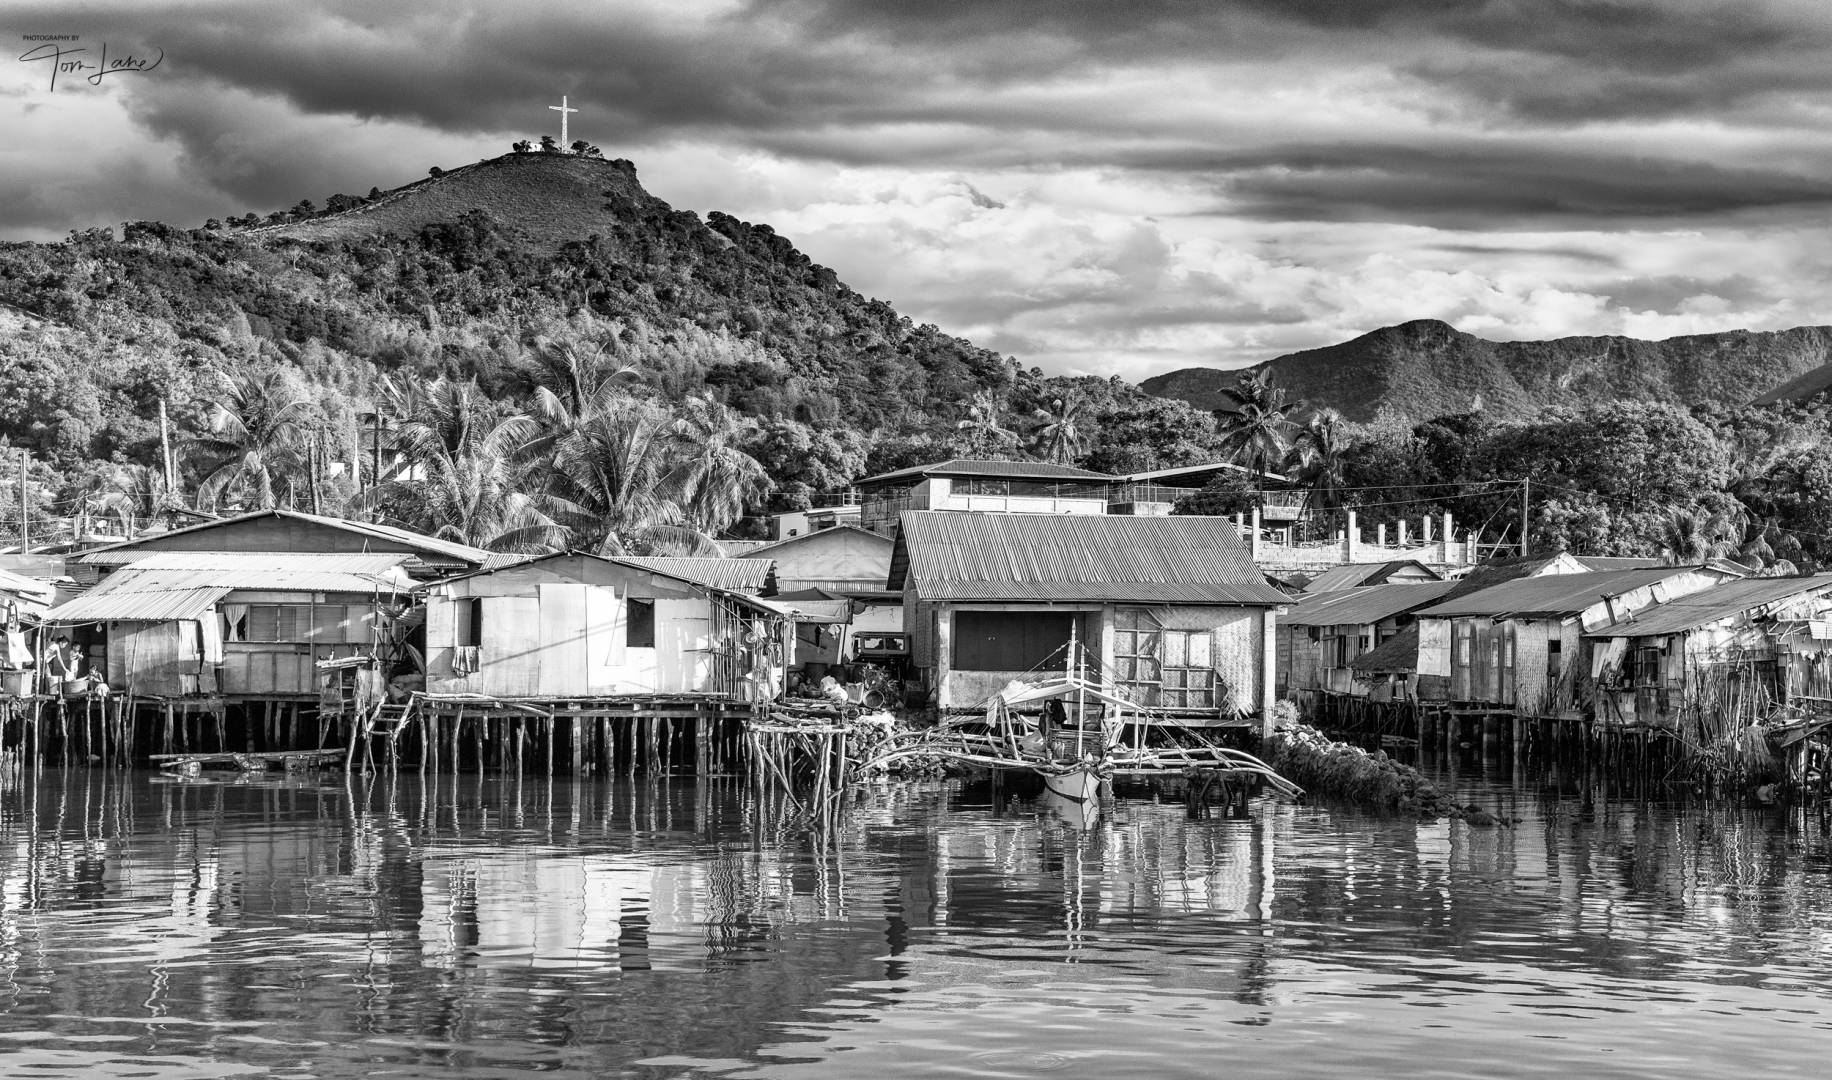 Coron Village in the Philippines (Leica M9 Monochrom and Tri-Elmar 28-35-50 set at 35mm)